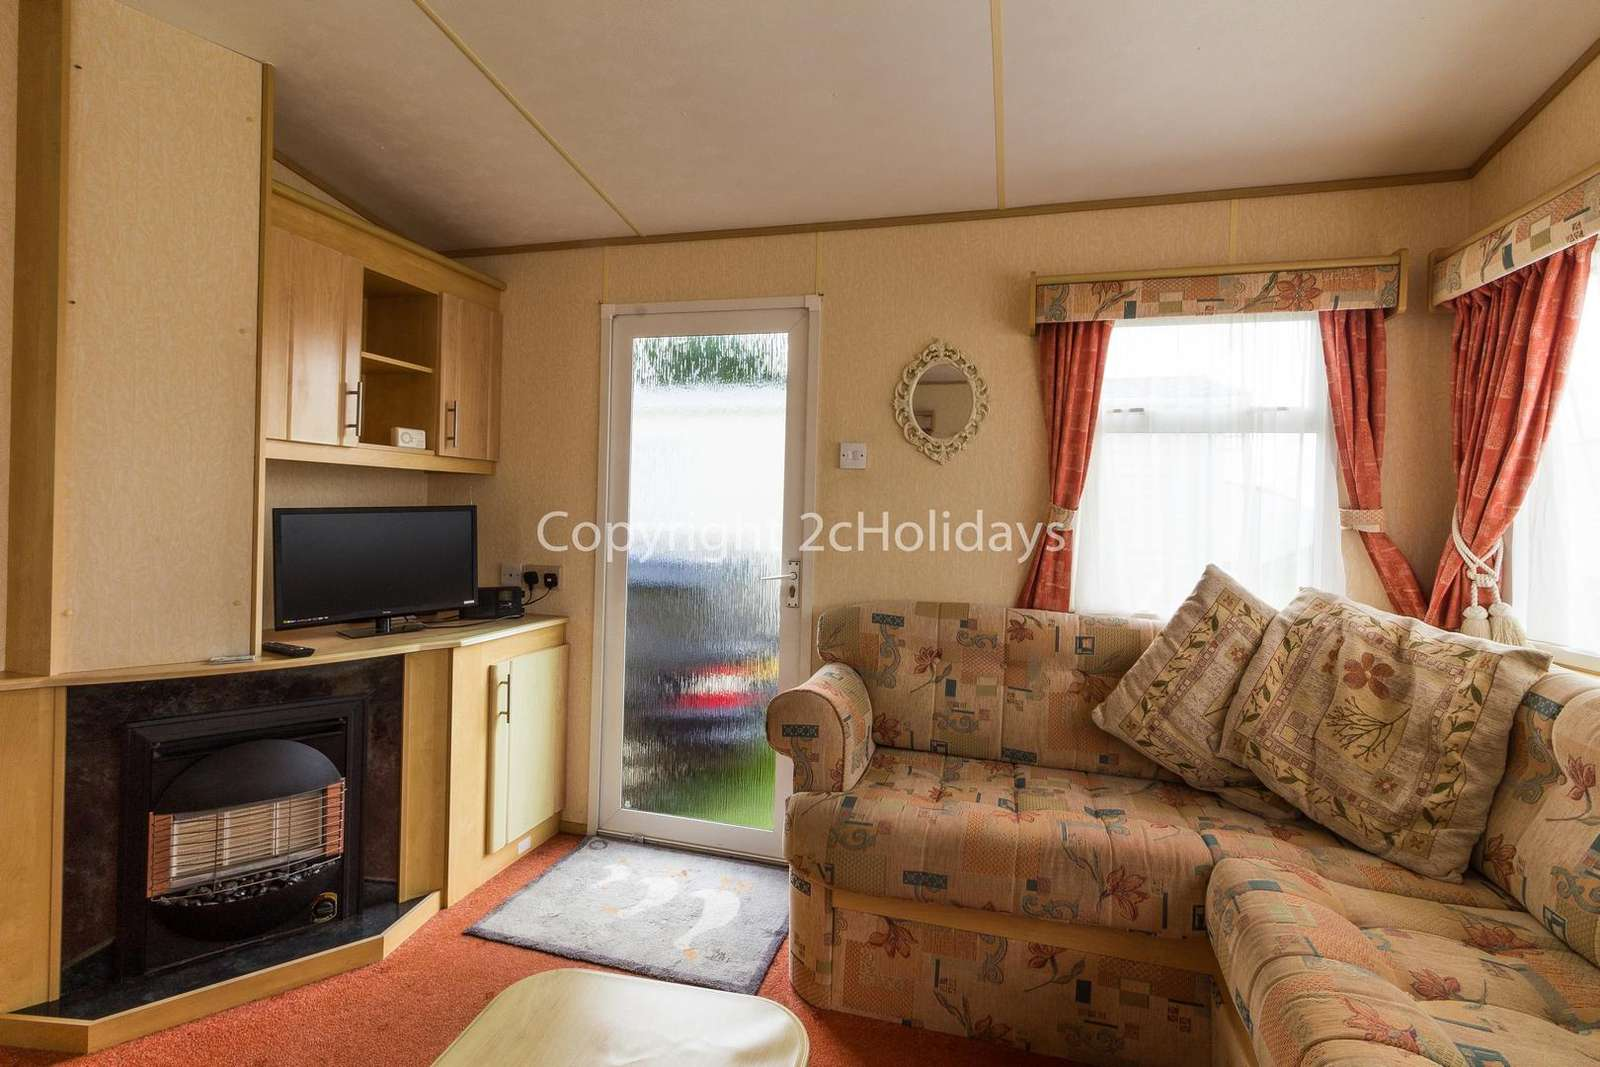 Book today with 2cHolidays